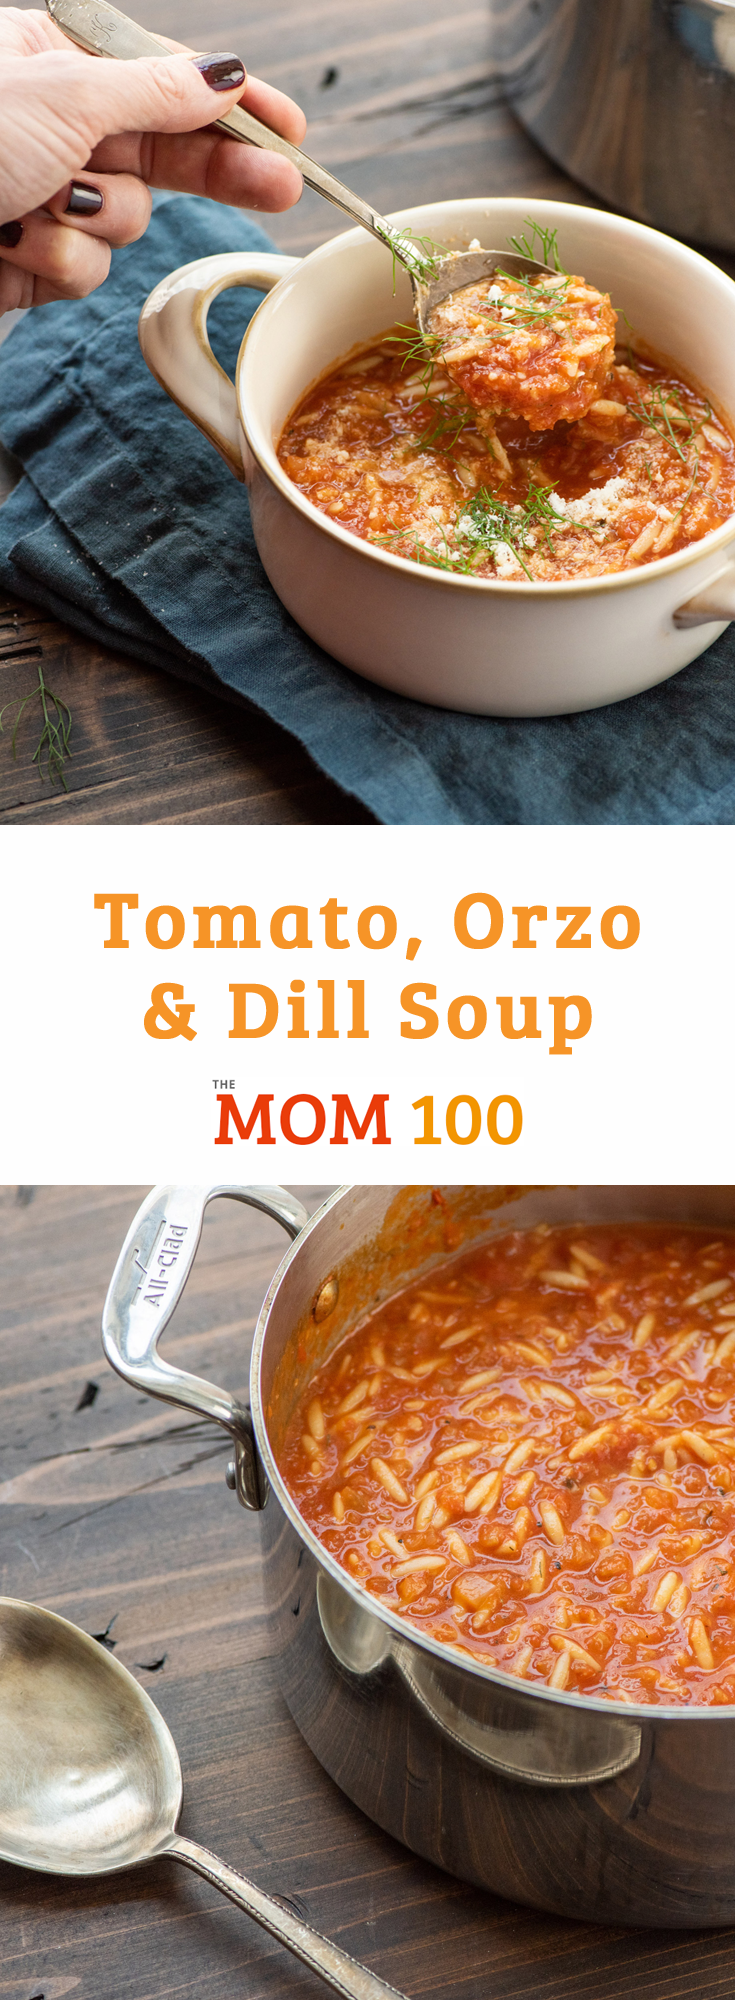 Make a soup people will remember—this comforting and hearty Tomato, Orzo and Dill Soup is really a meal, just top with a little fresh Parmesan to complete.